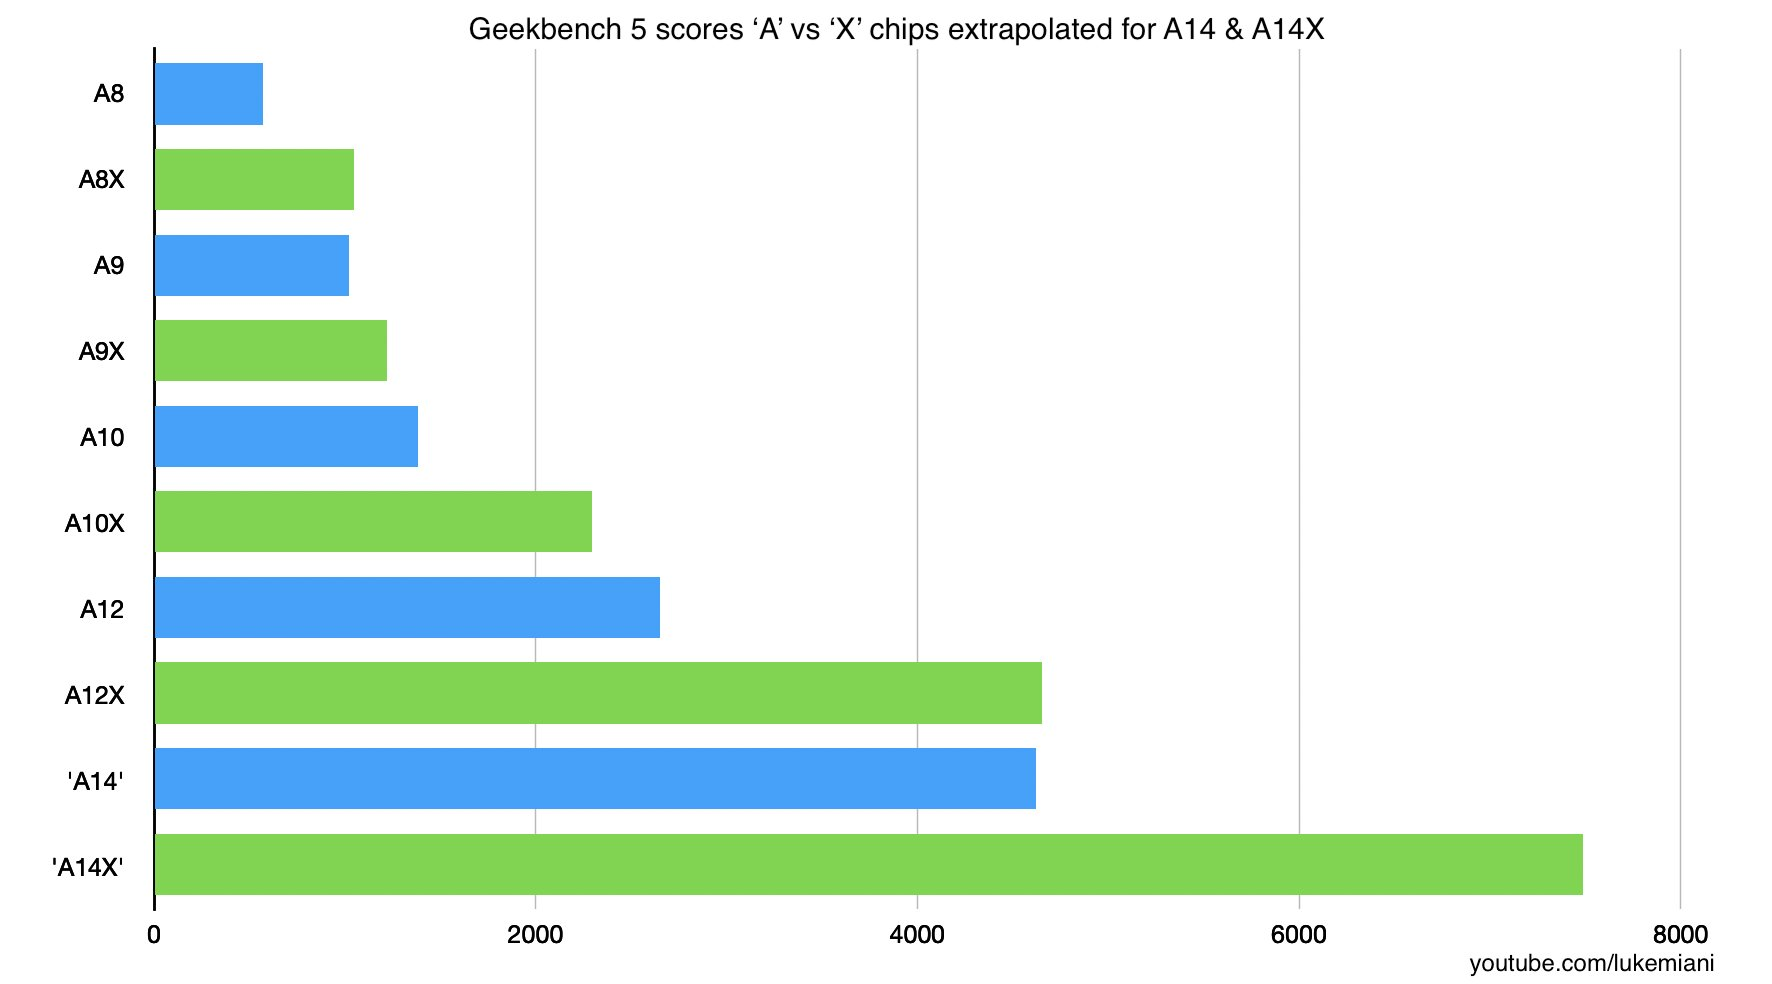 Apple chip geekbench